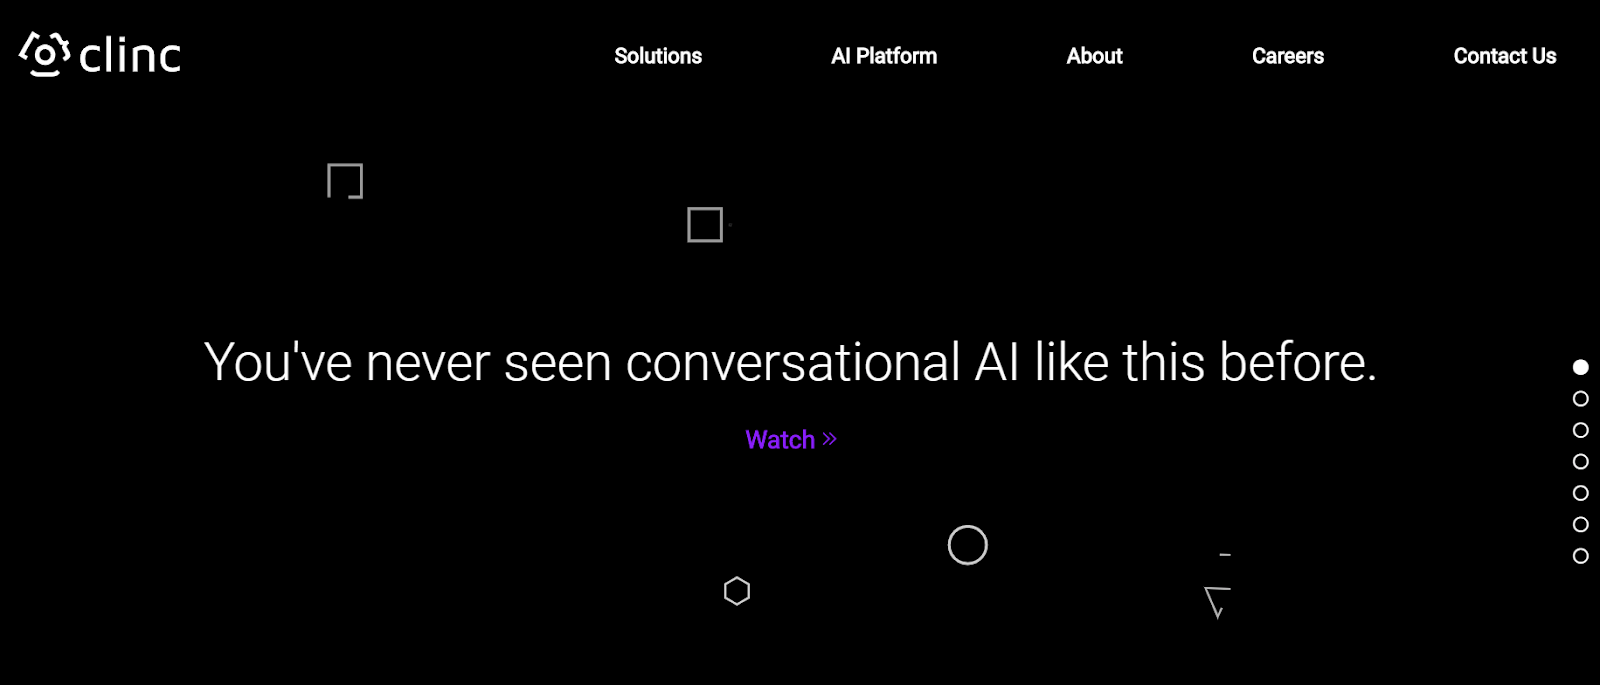 Clinc Conversational AI Platforms